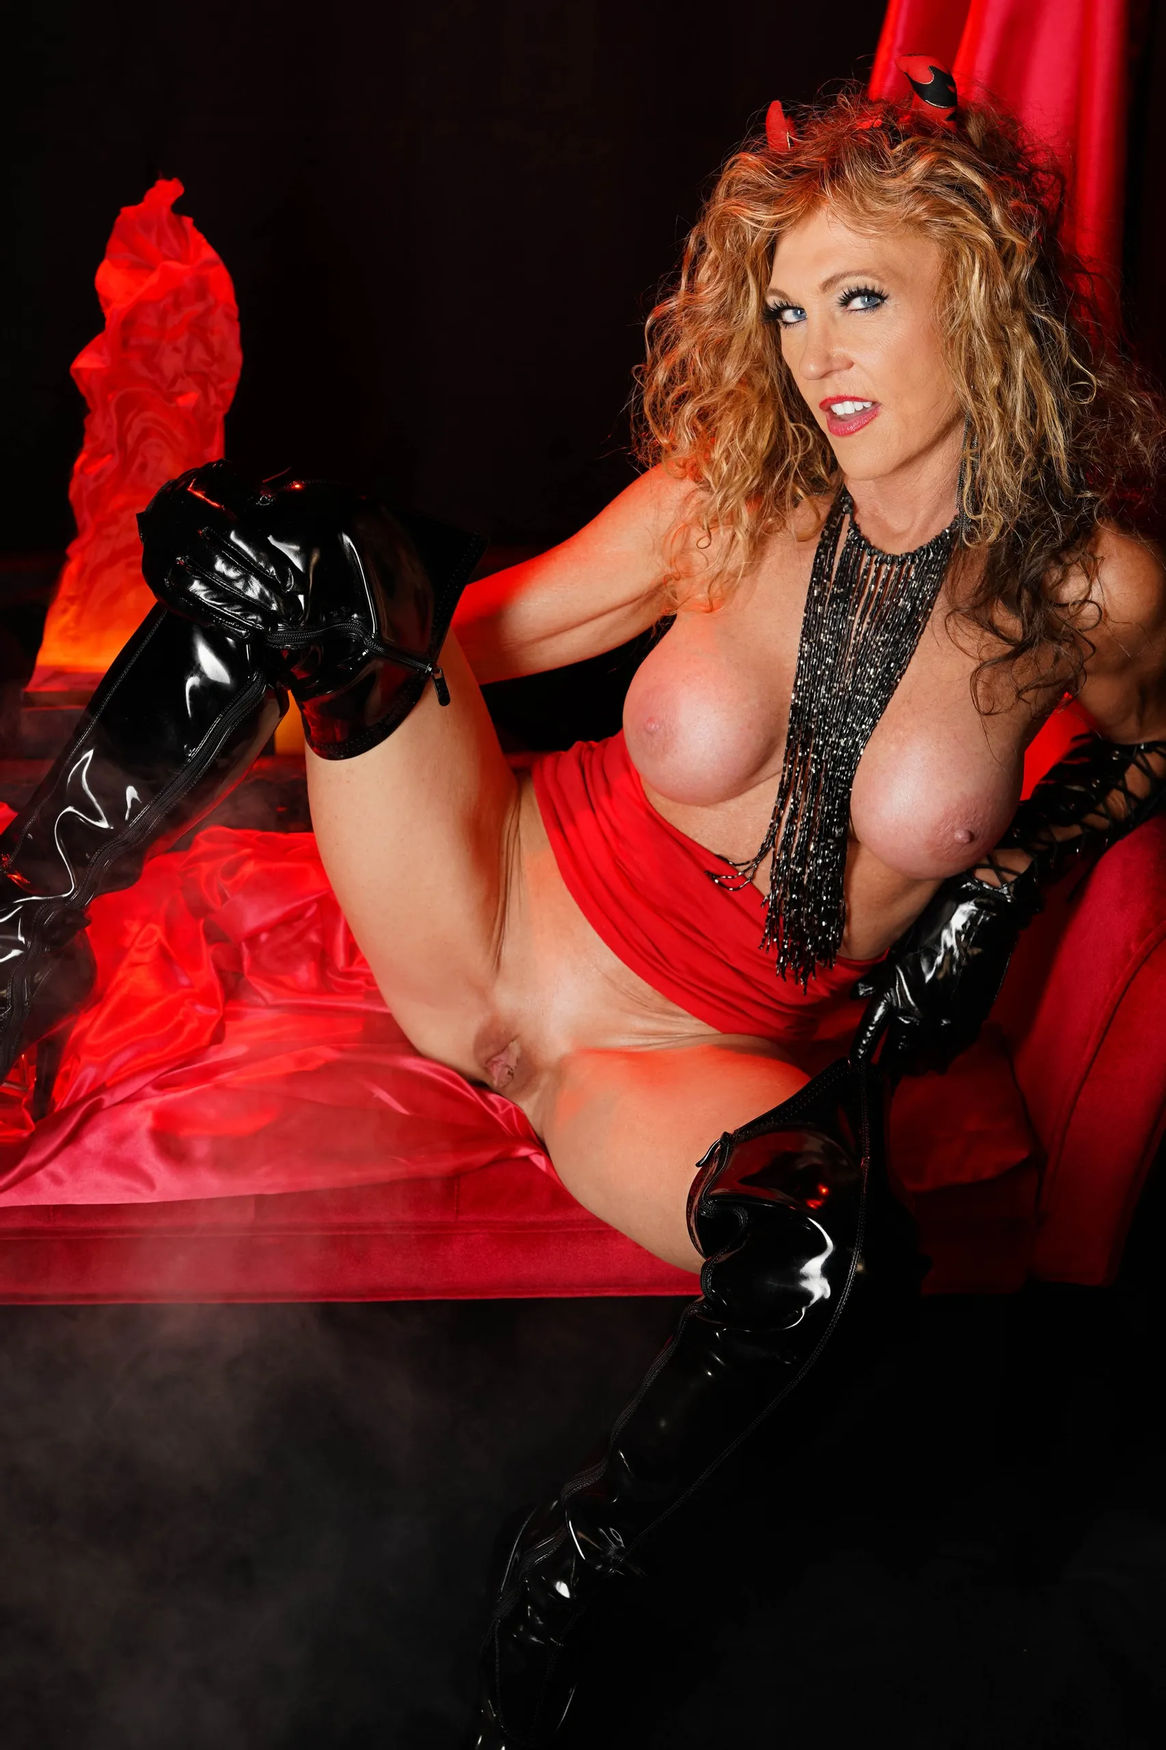 Xtasygirl big tits and shaved pussy with chubby cameltoe in red lingeries and black latex thighs ...